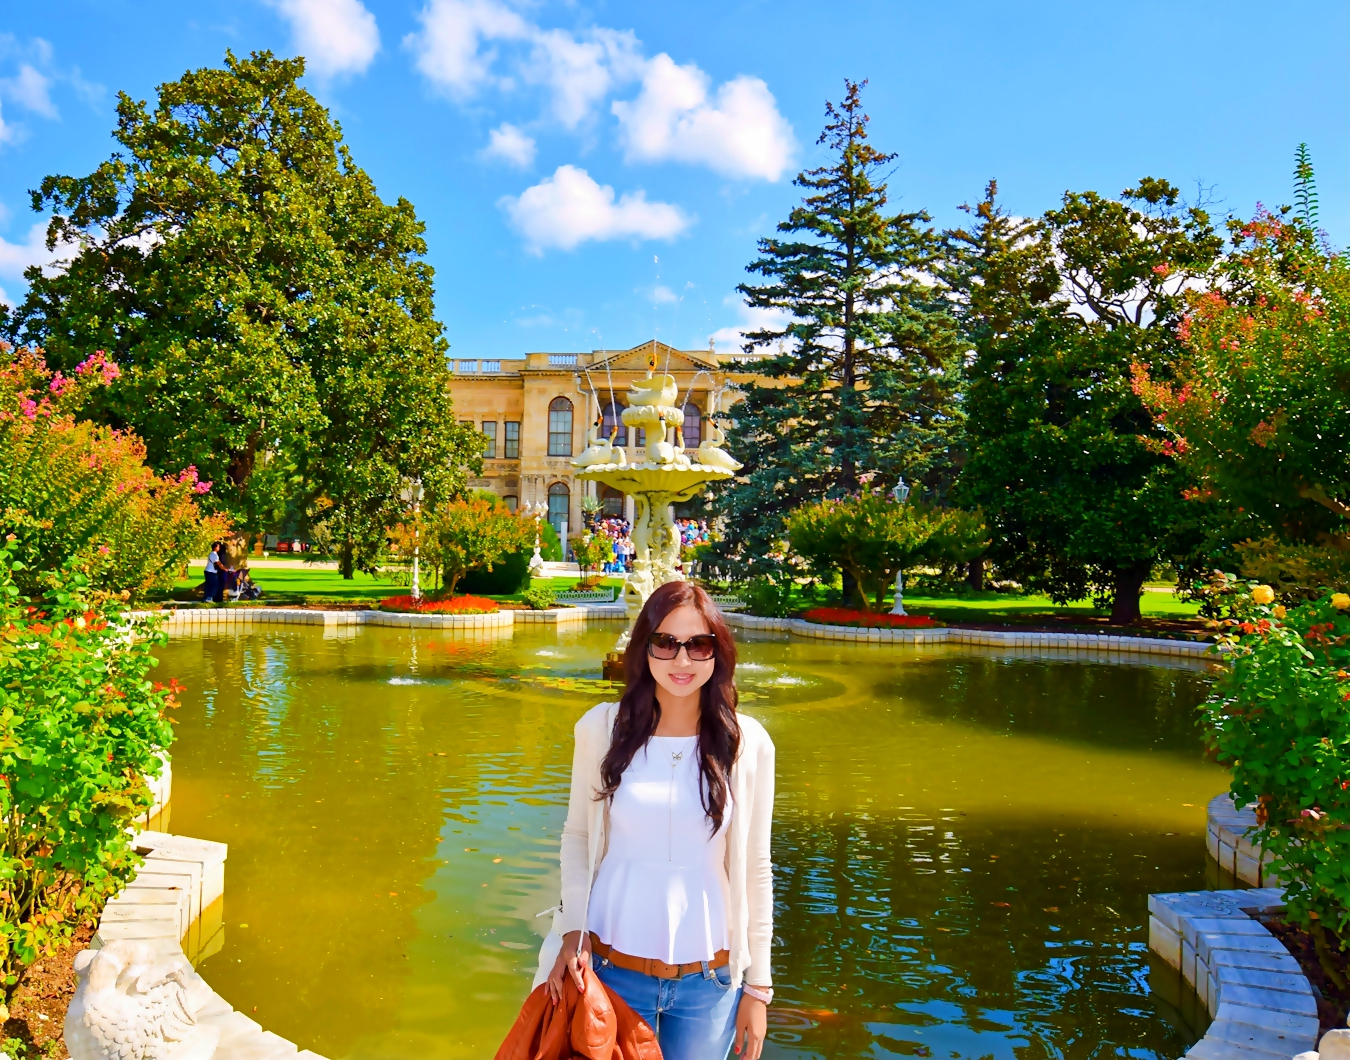 Dolmabahce Palace in Istanbul Turkey